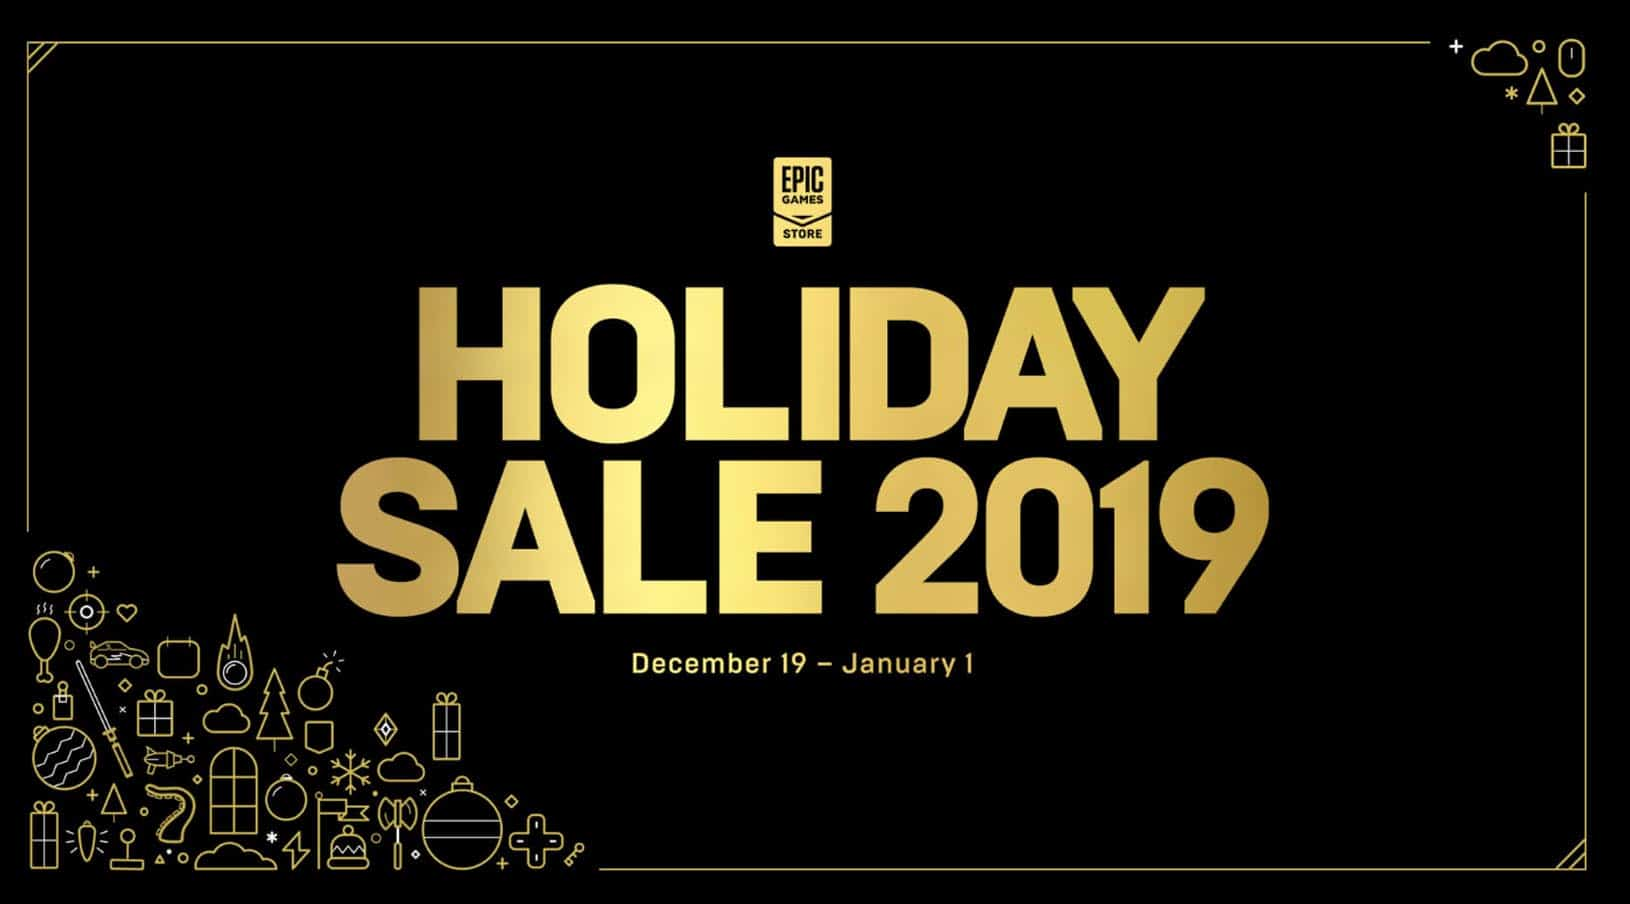 epic games holiday sale